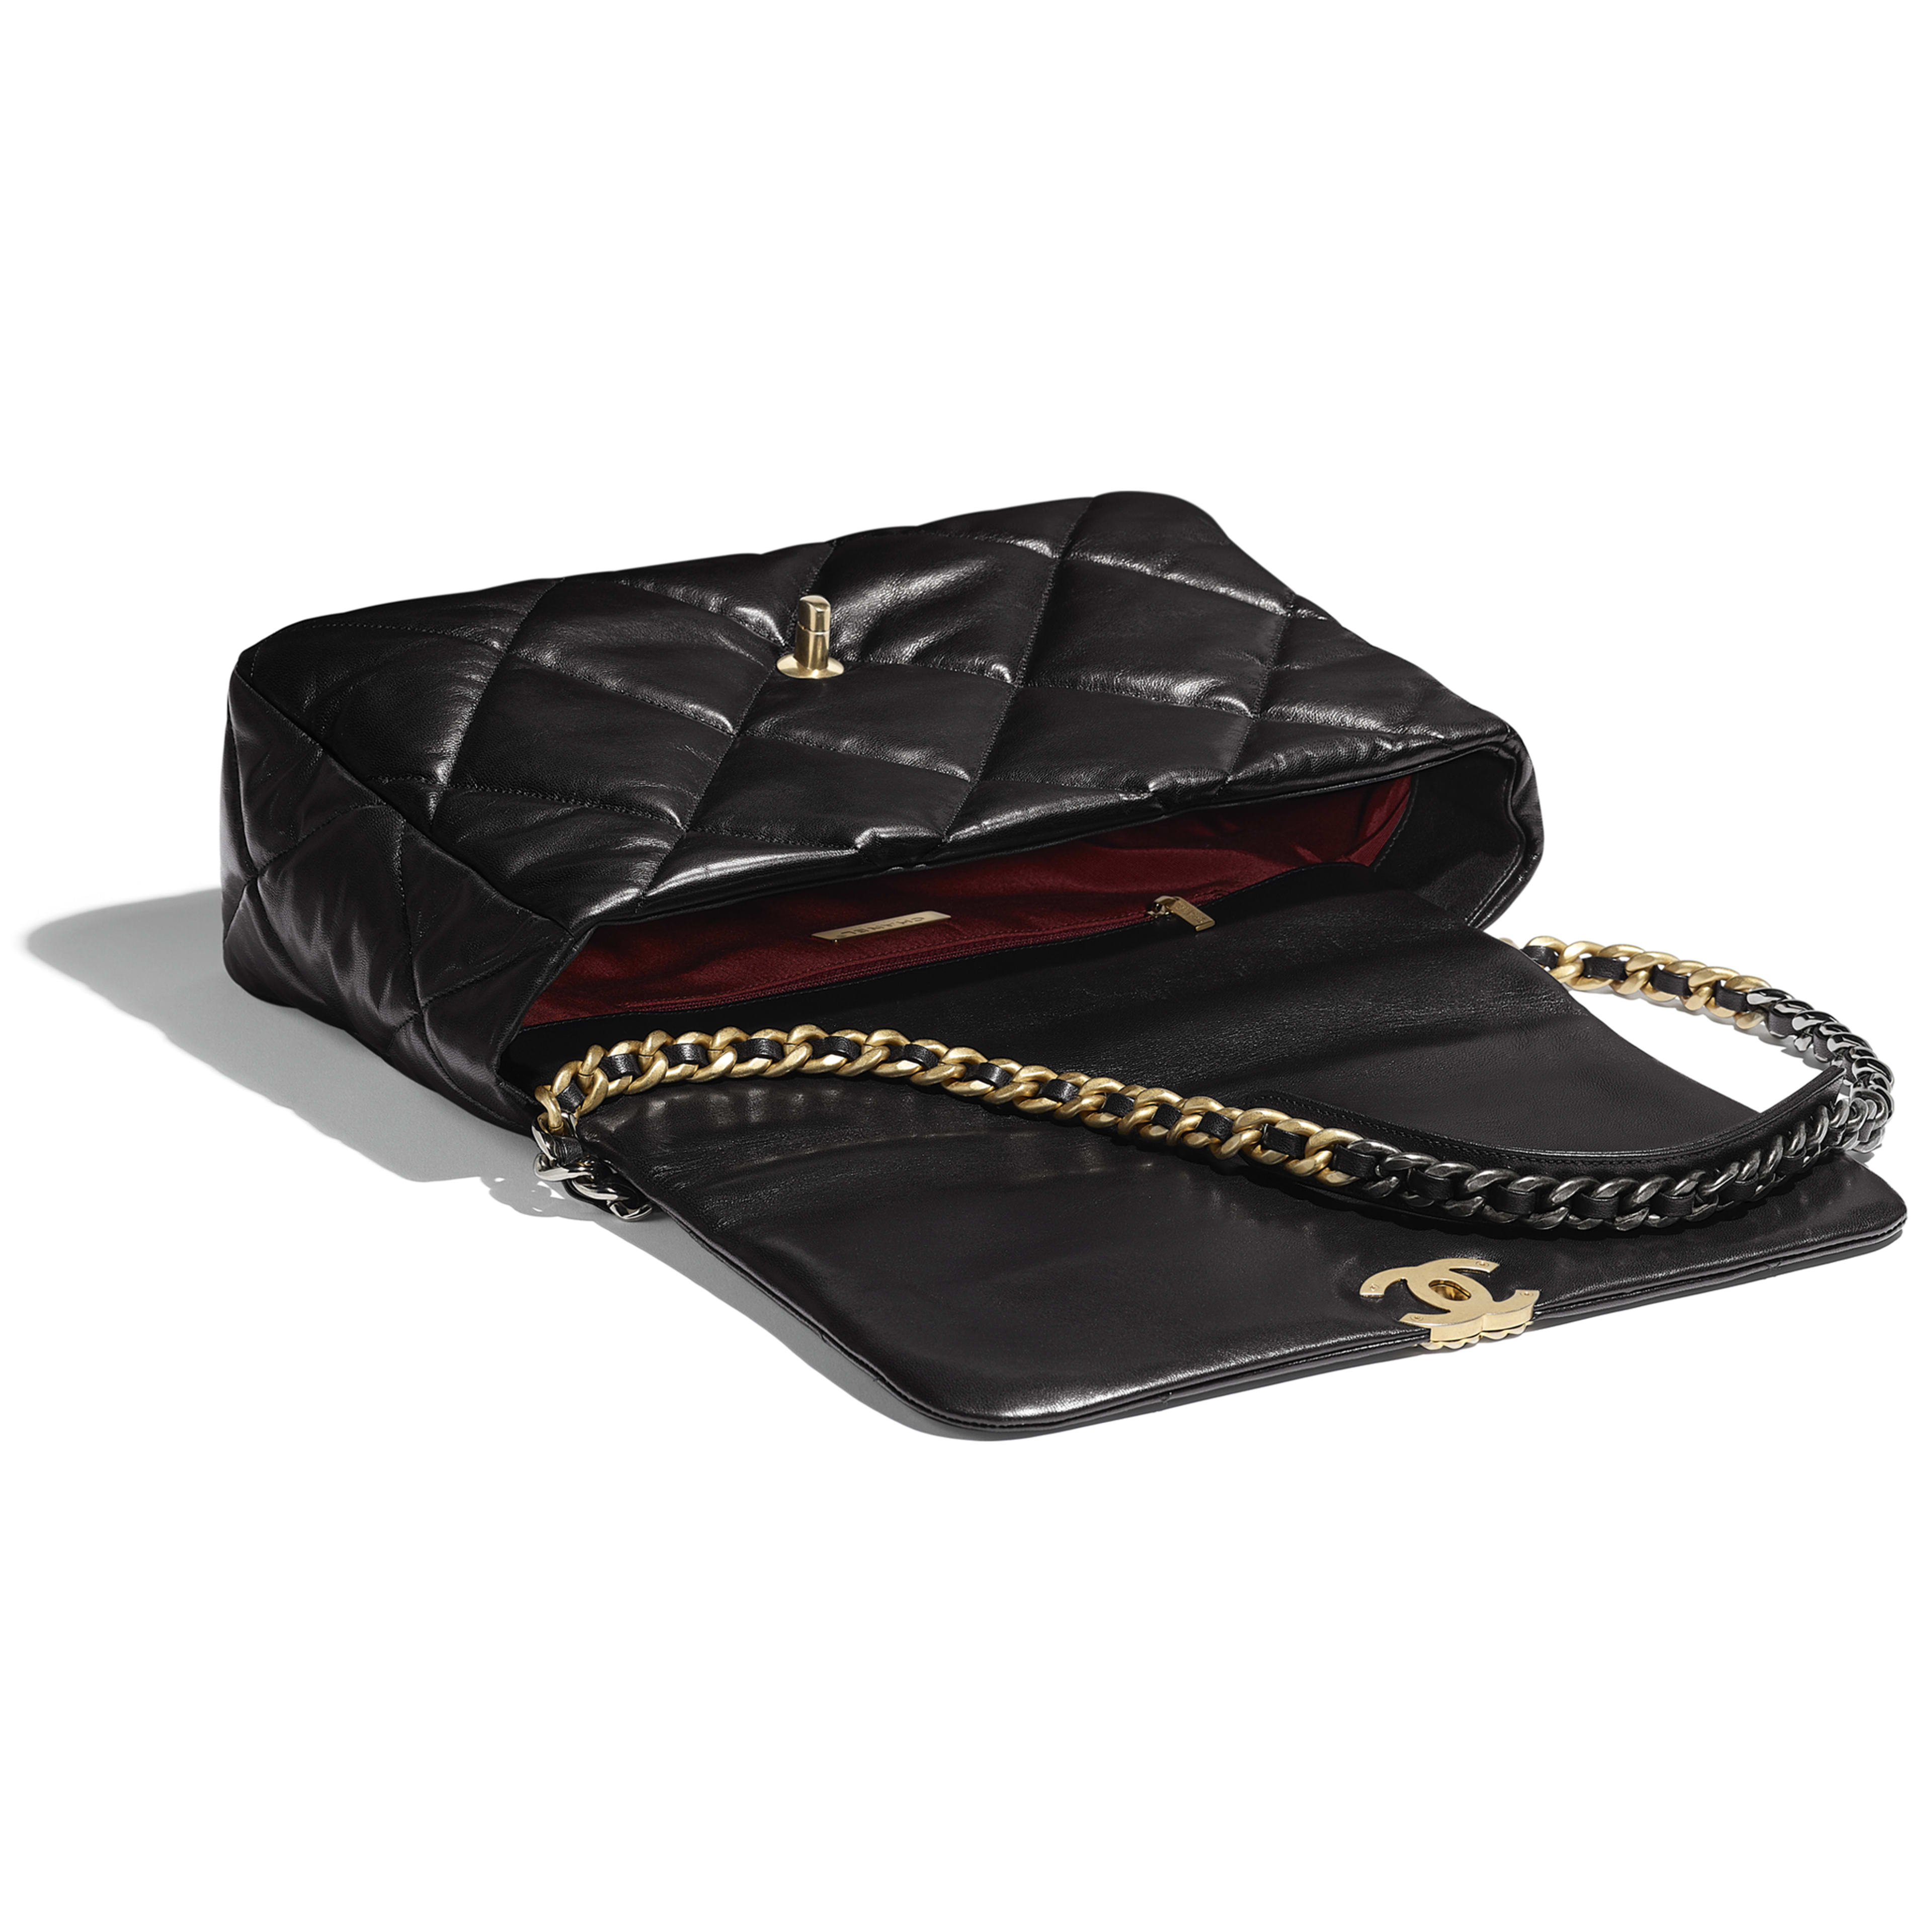 CHANEL 19 Maxi Flap Bag - Black - Goatskin, Gold-Tone, Silver-Tone & Ruthenium-Finish Metal - Other view - see full sized version